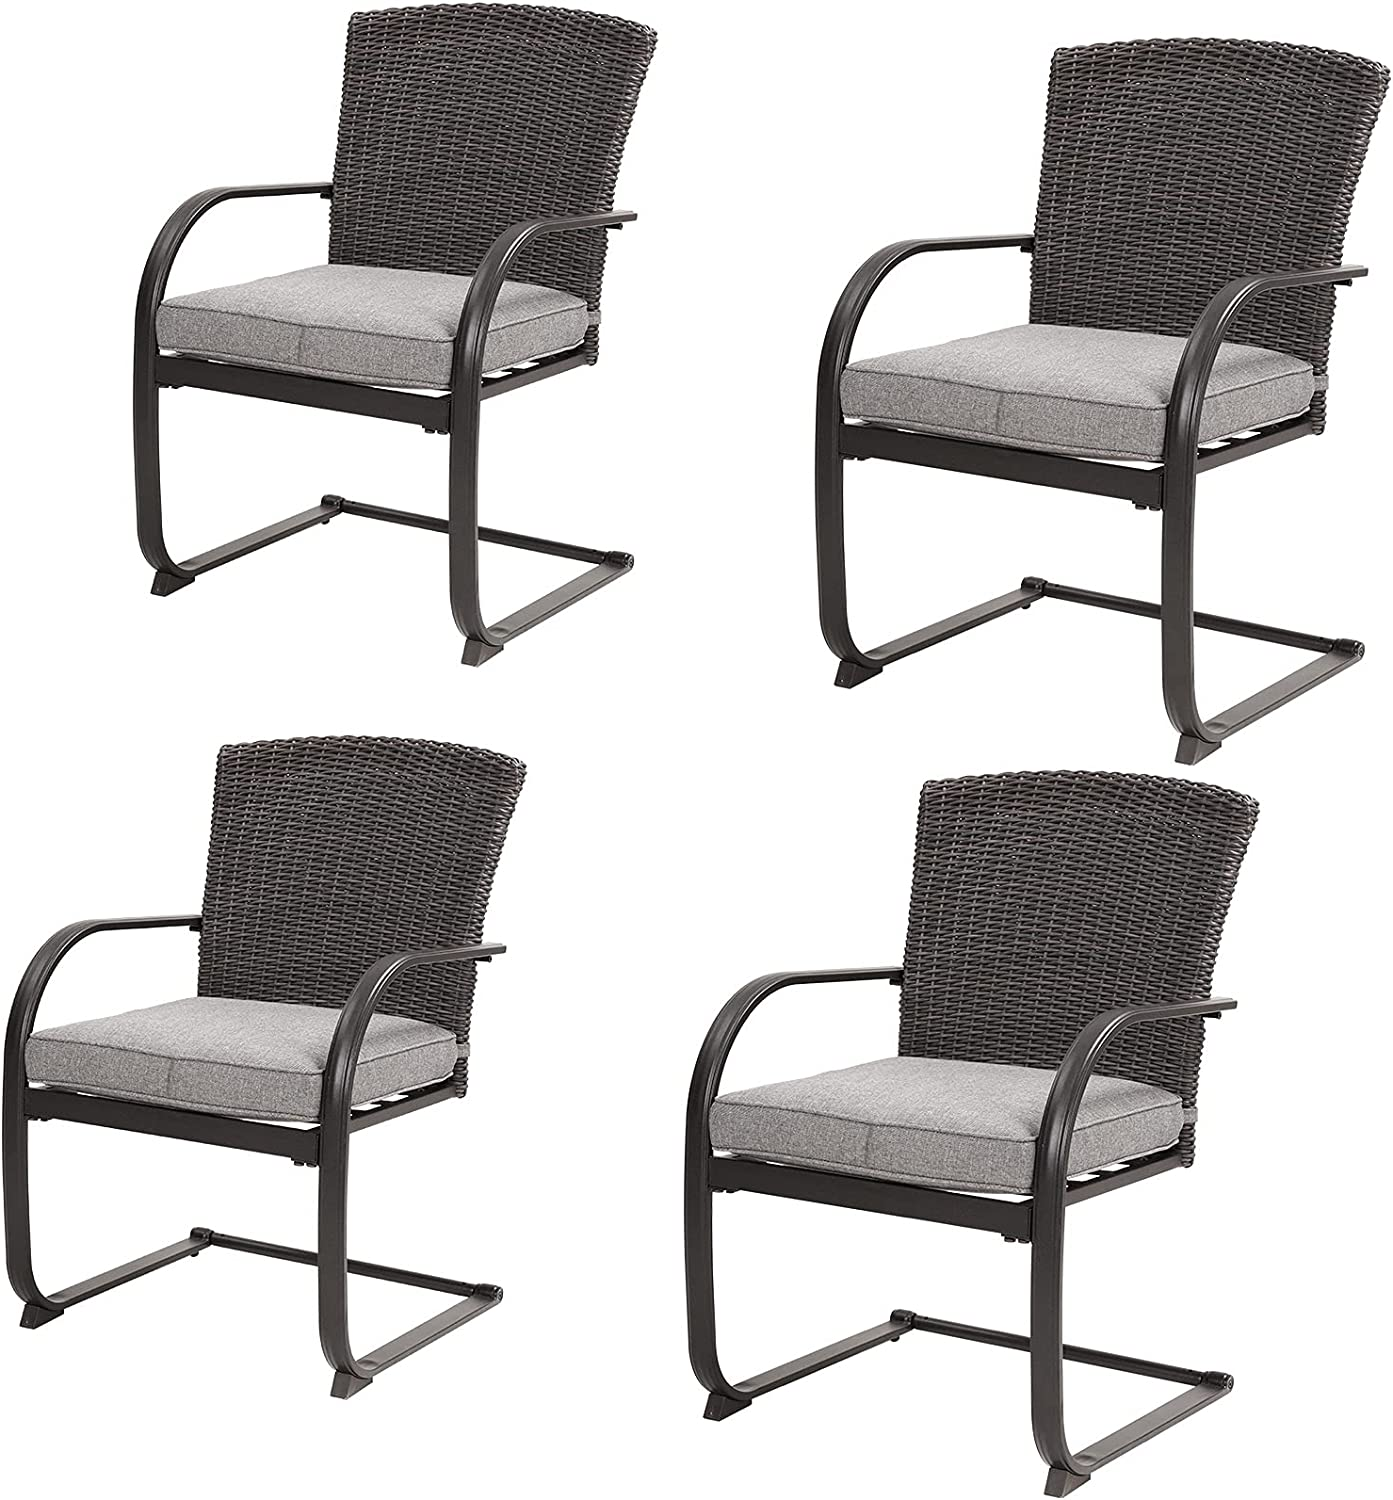 Grand 55% OFF Patio 4 Pieces Our shop OFFers the best service Outdoor Dining with Set Motion C-Spring Res